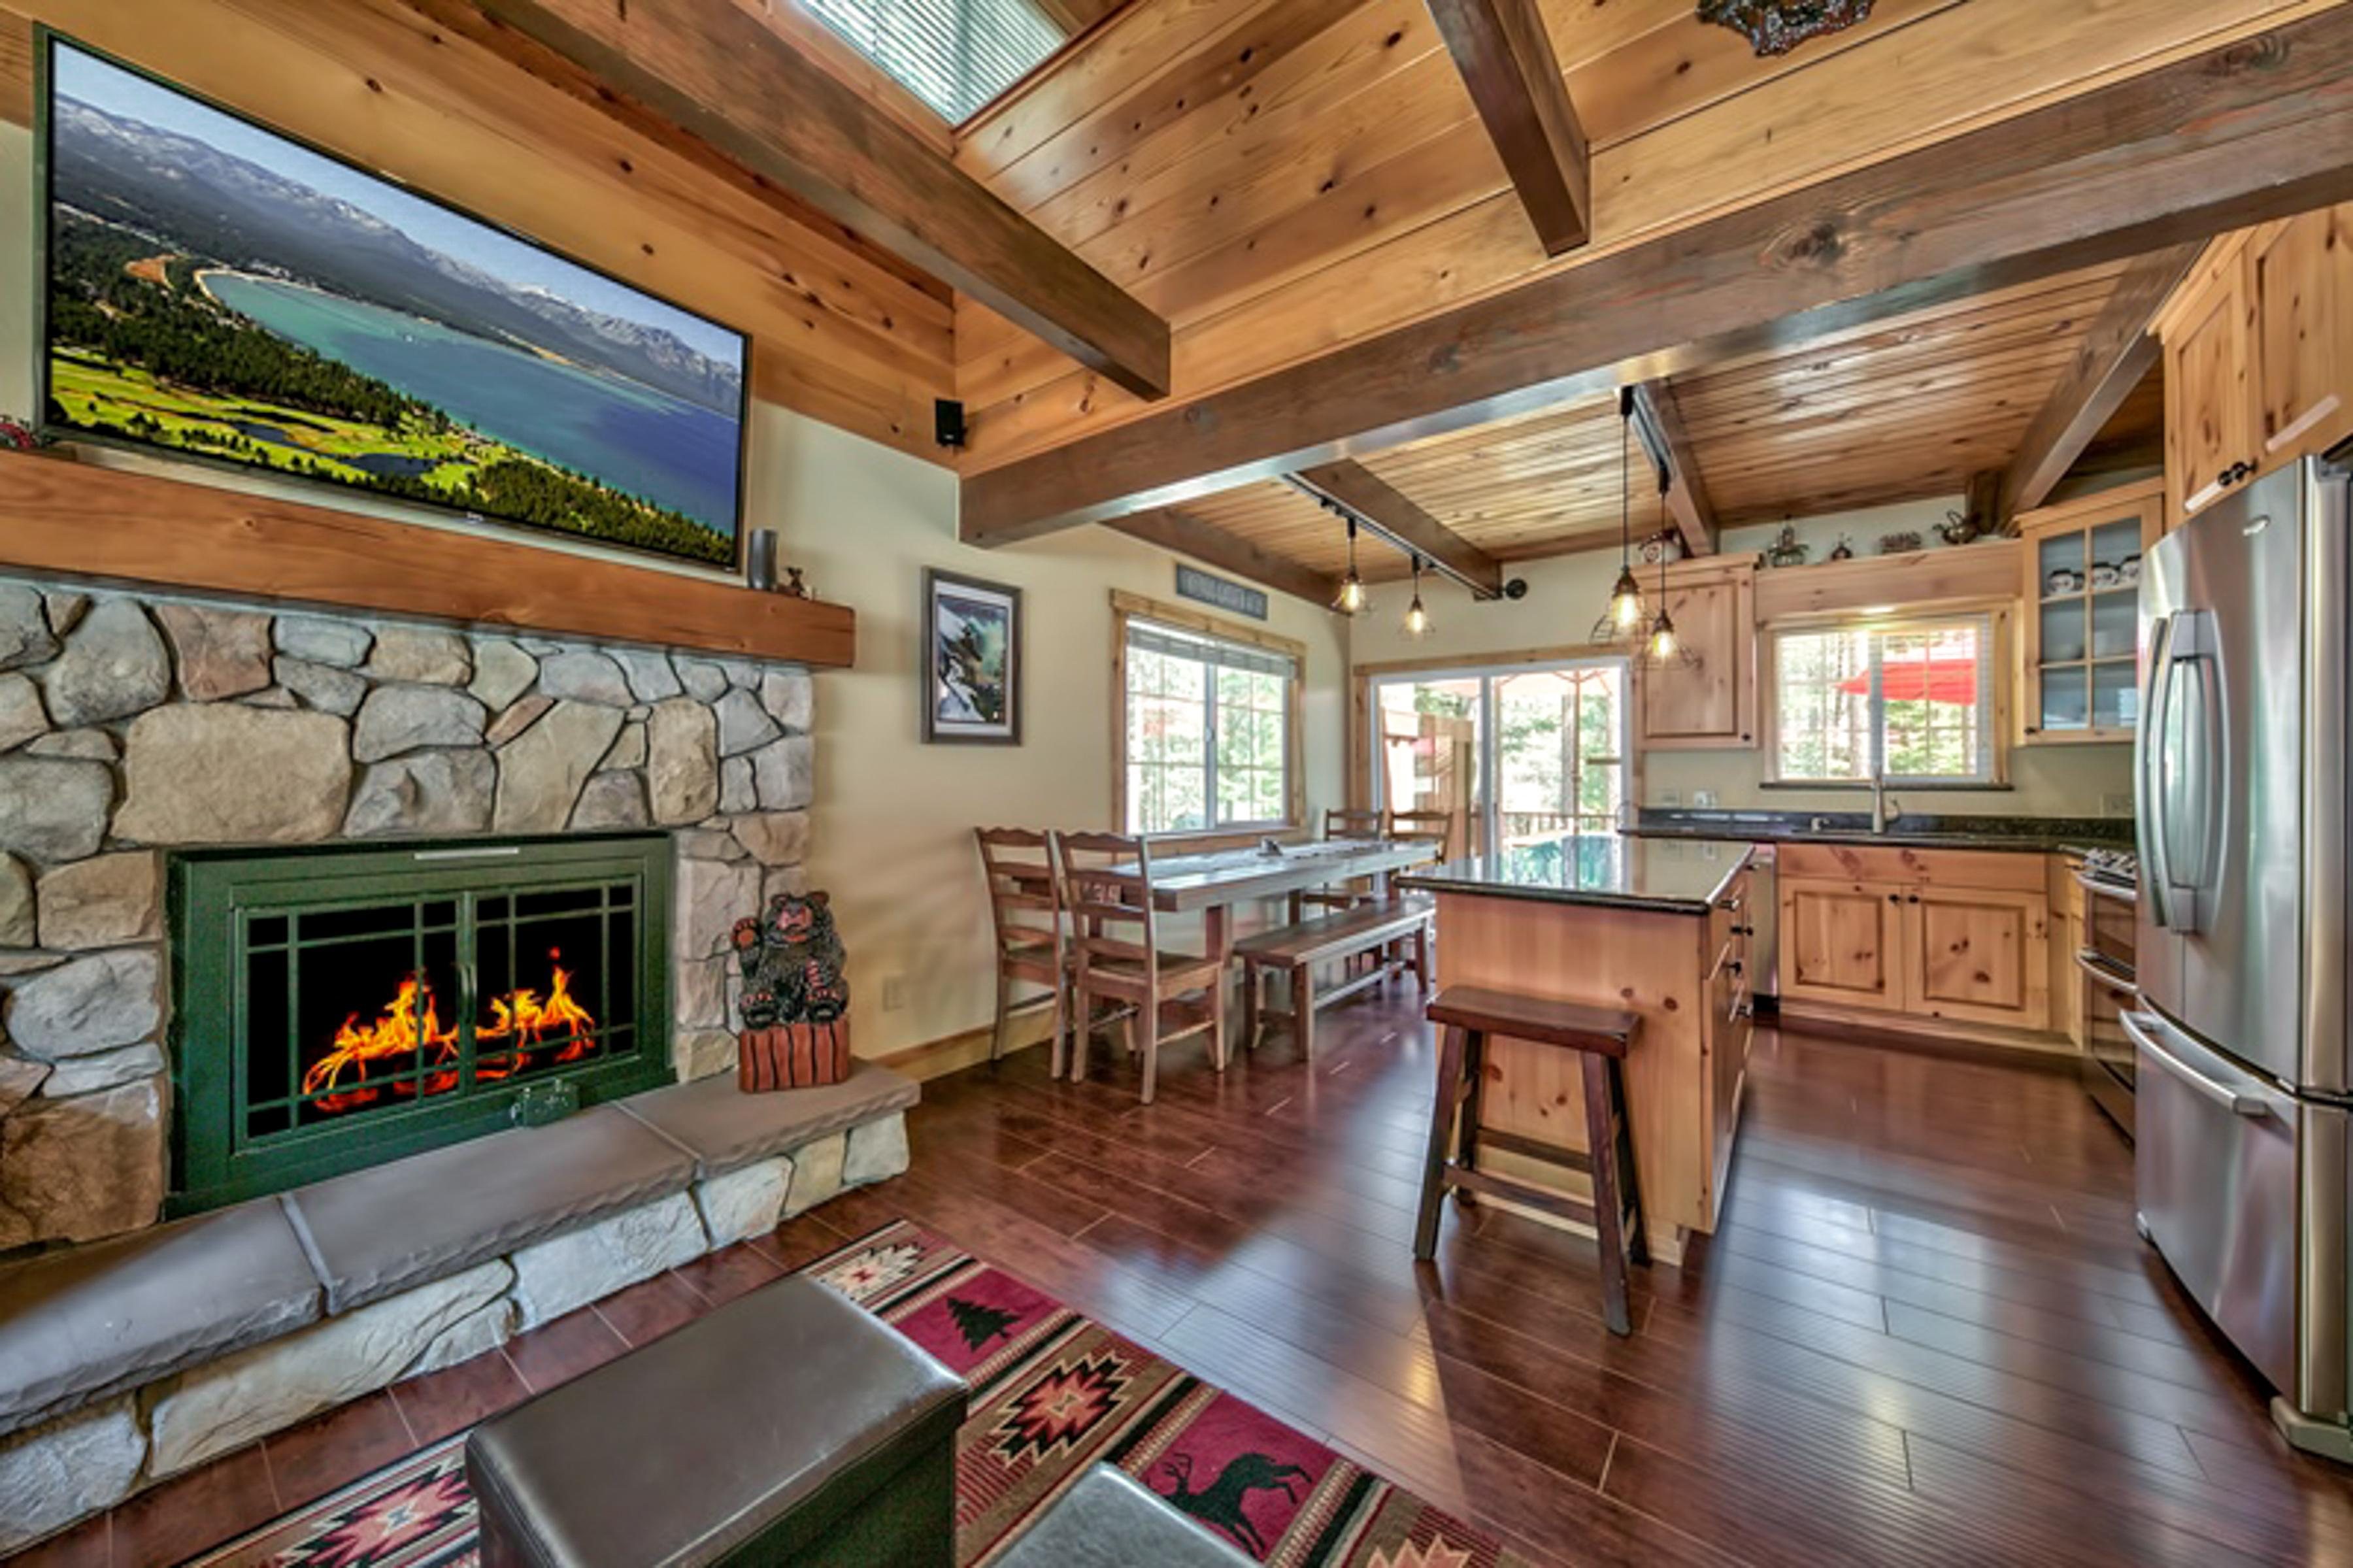 Welcome to South Lake Tahoe! A large flat screen TV sits over the gas fireplace in the open living room.